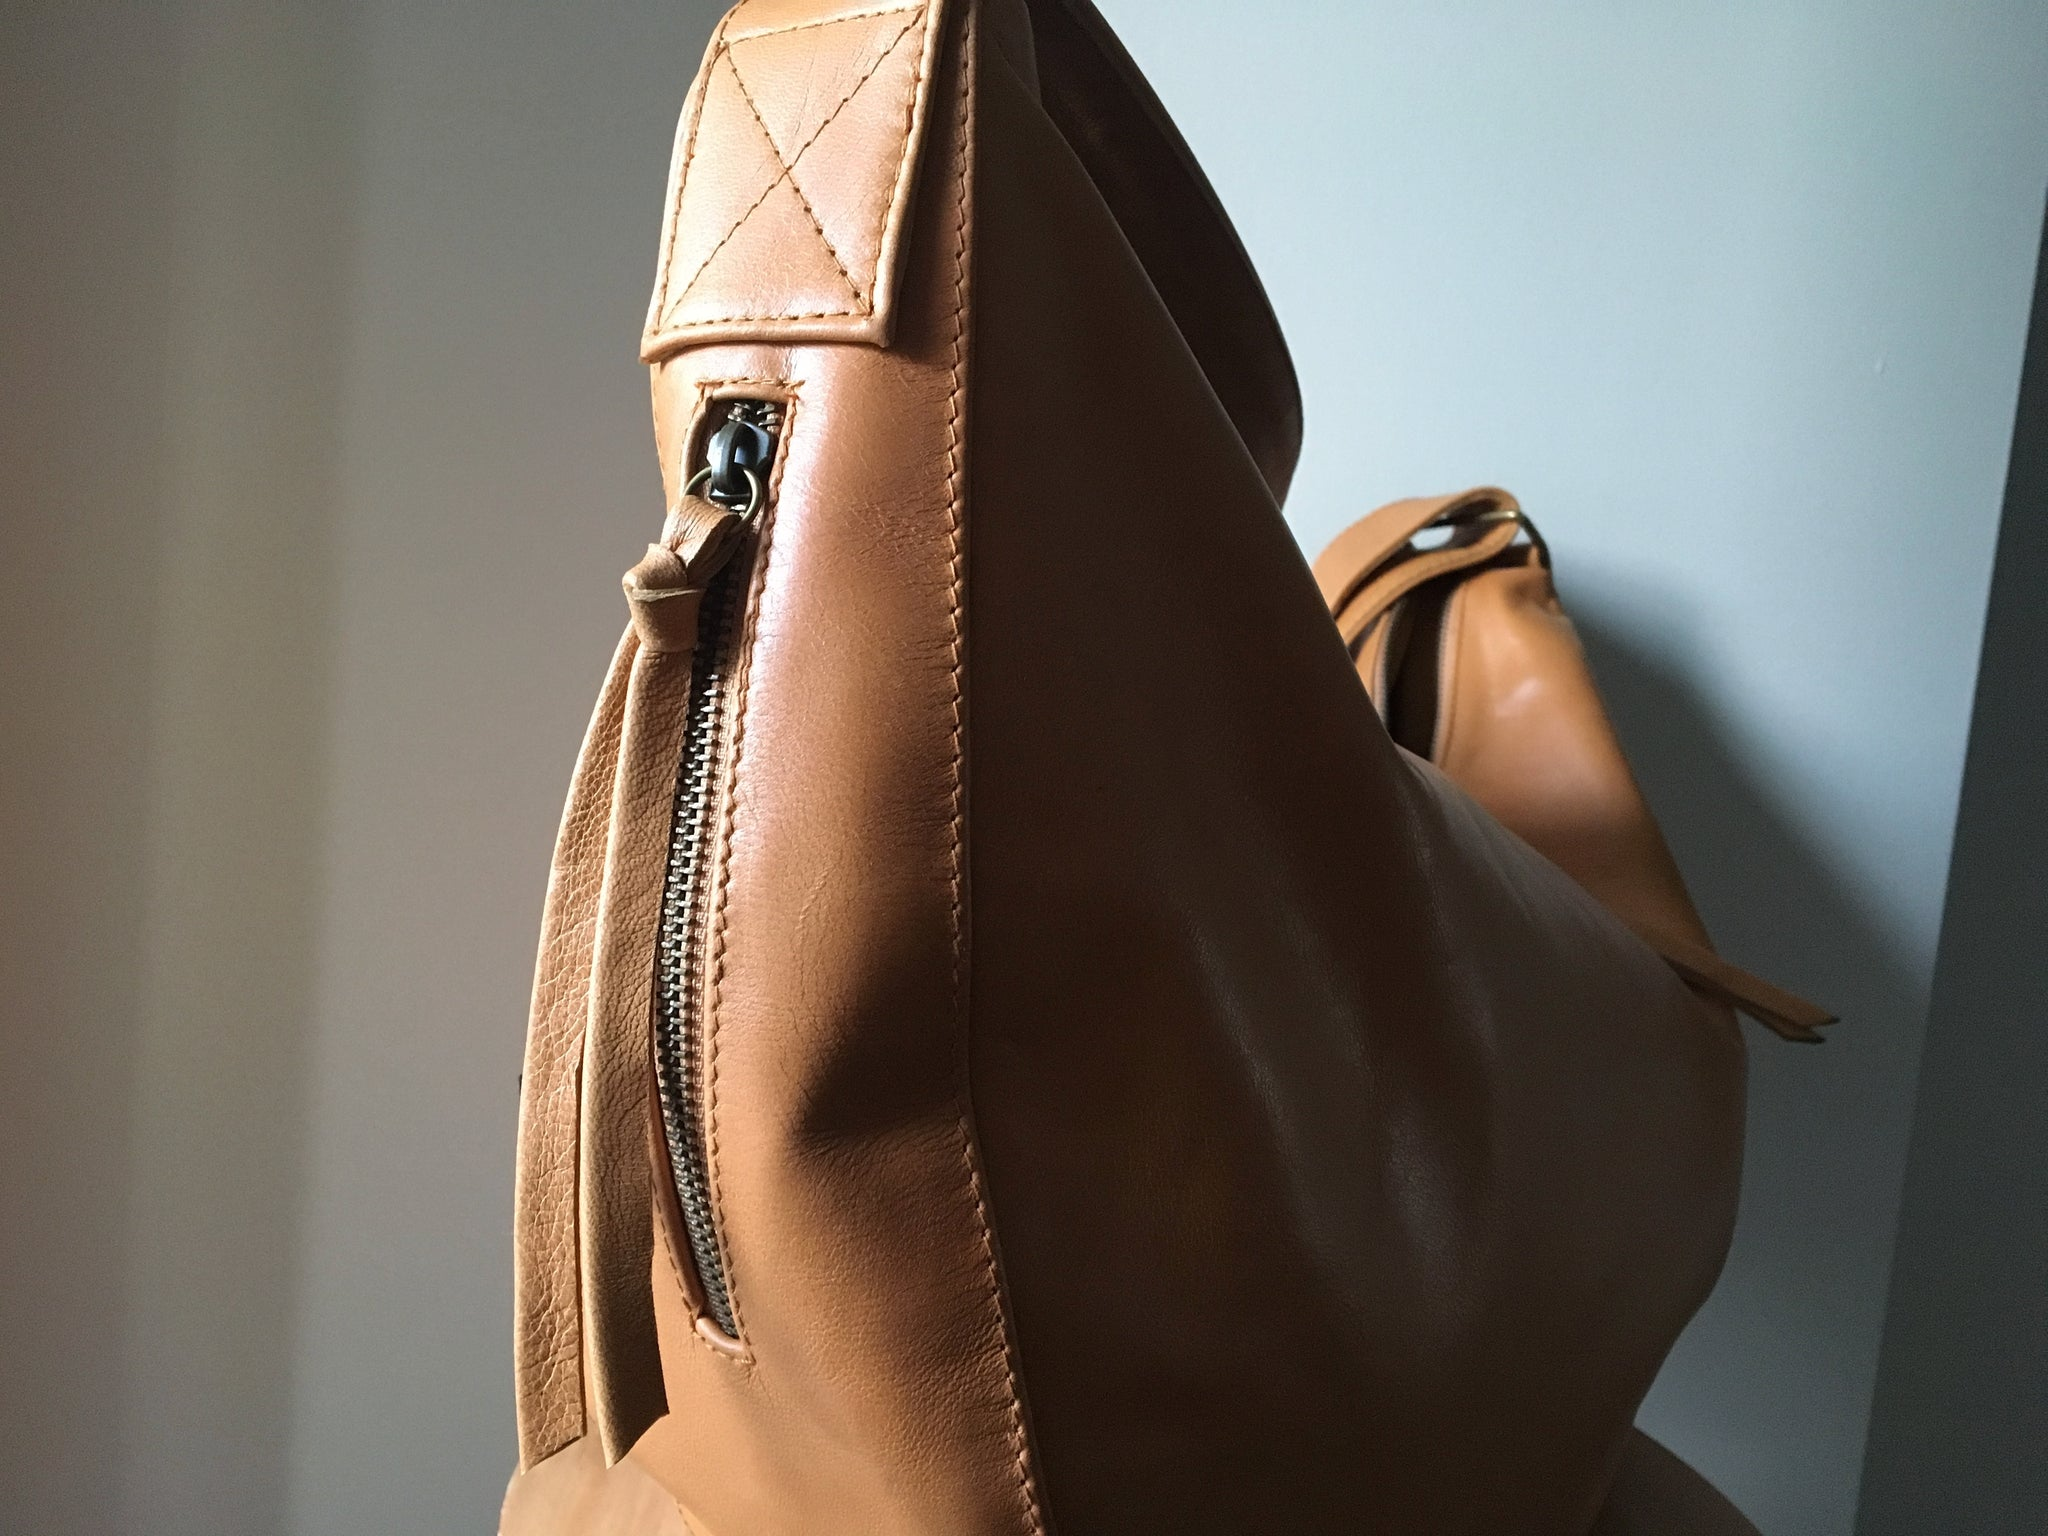 The Bend-Curvy slouchy and soft handmade leather handbag. Crossbody wide strap.